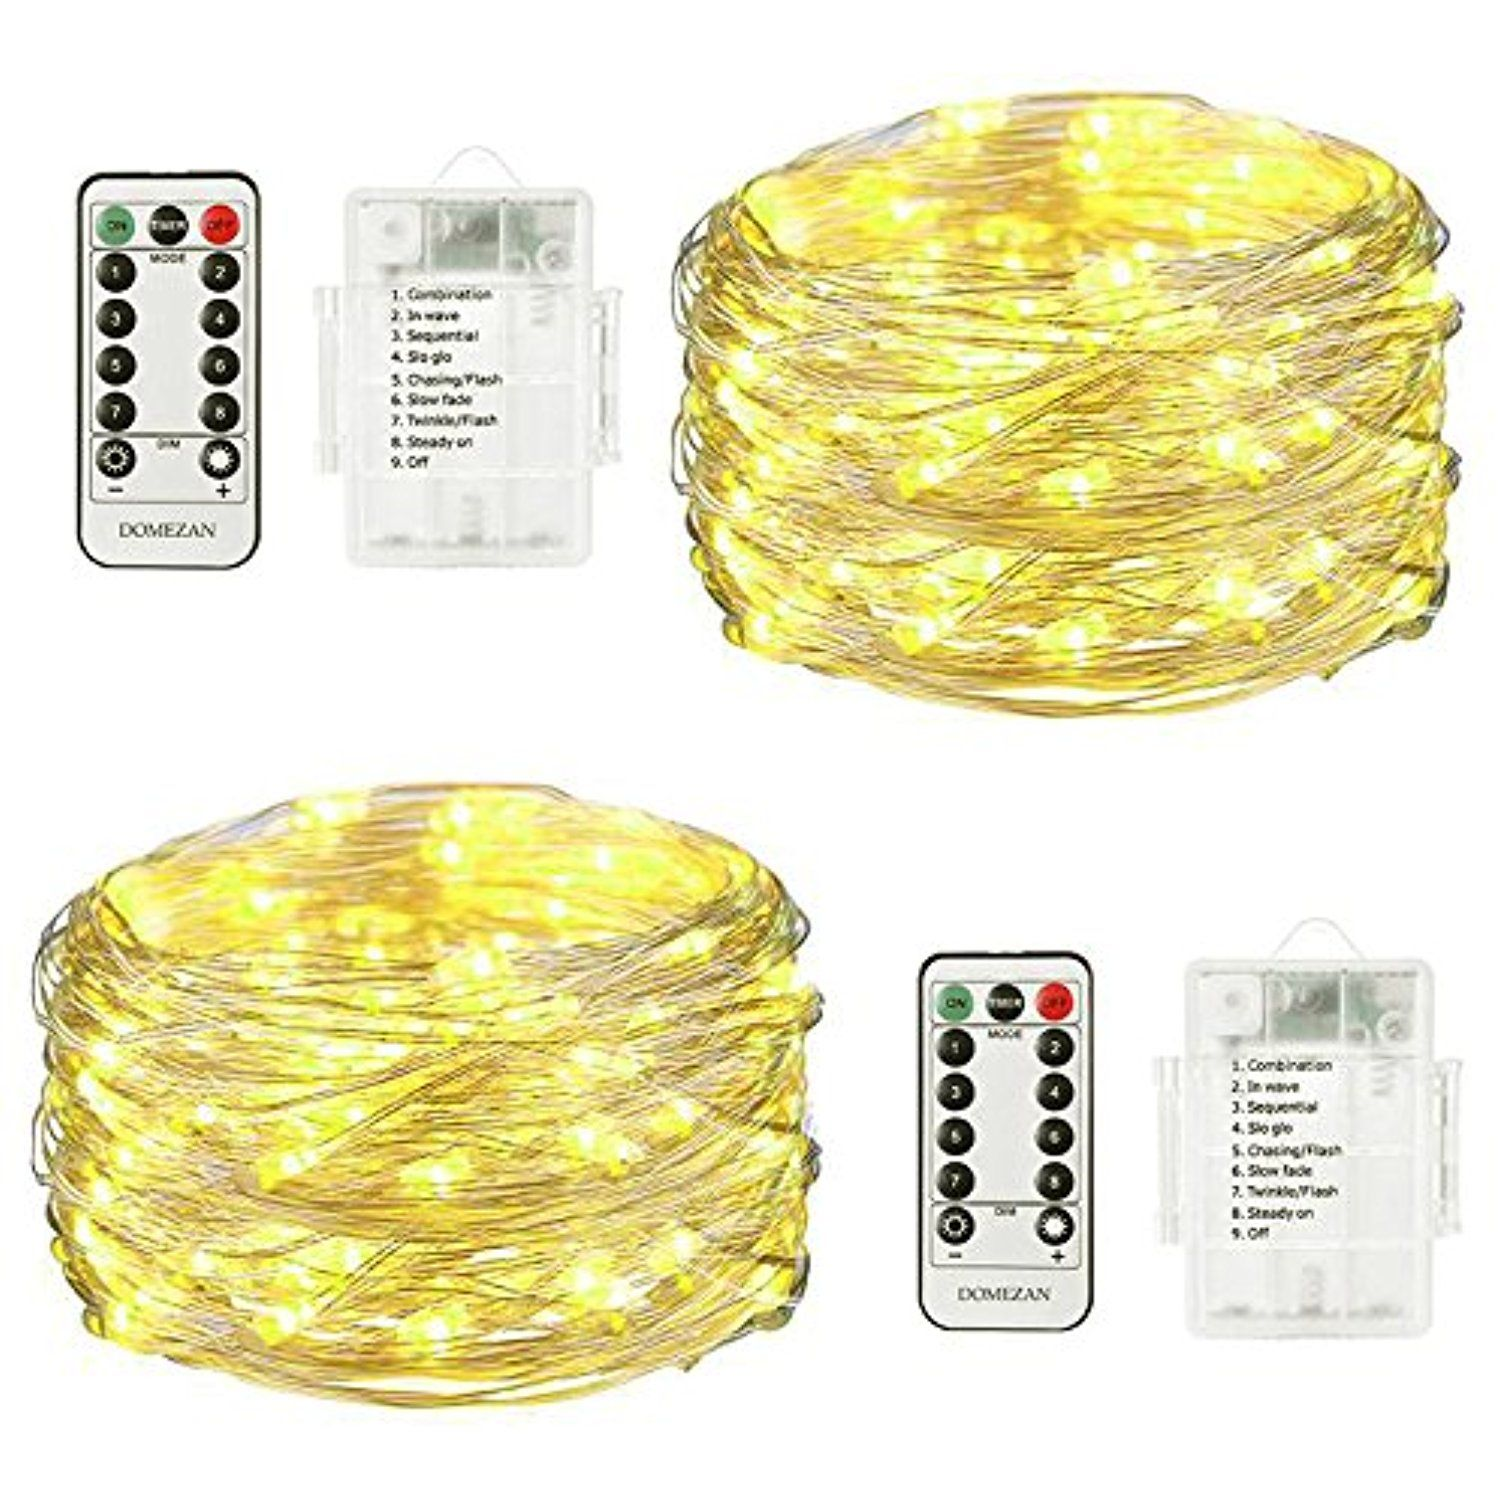 Fairy Lights Battery Operated Waterproof DOMEZAN, 2 x 16.4ft Copper ...